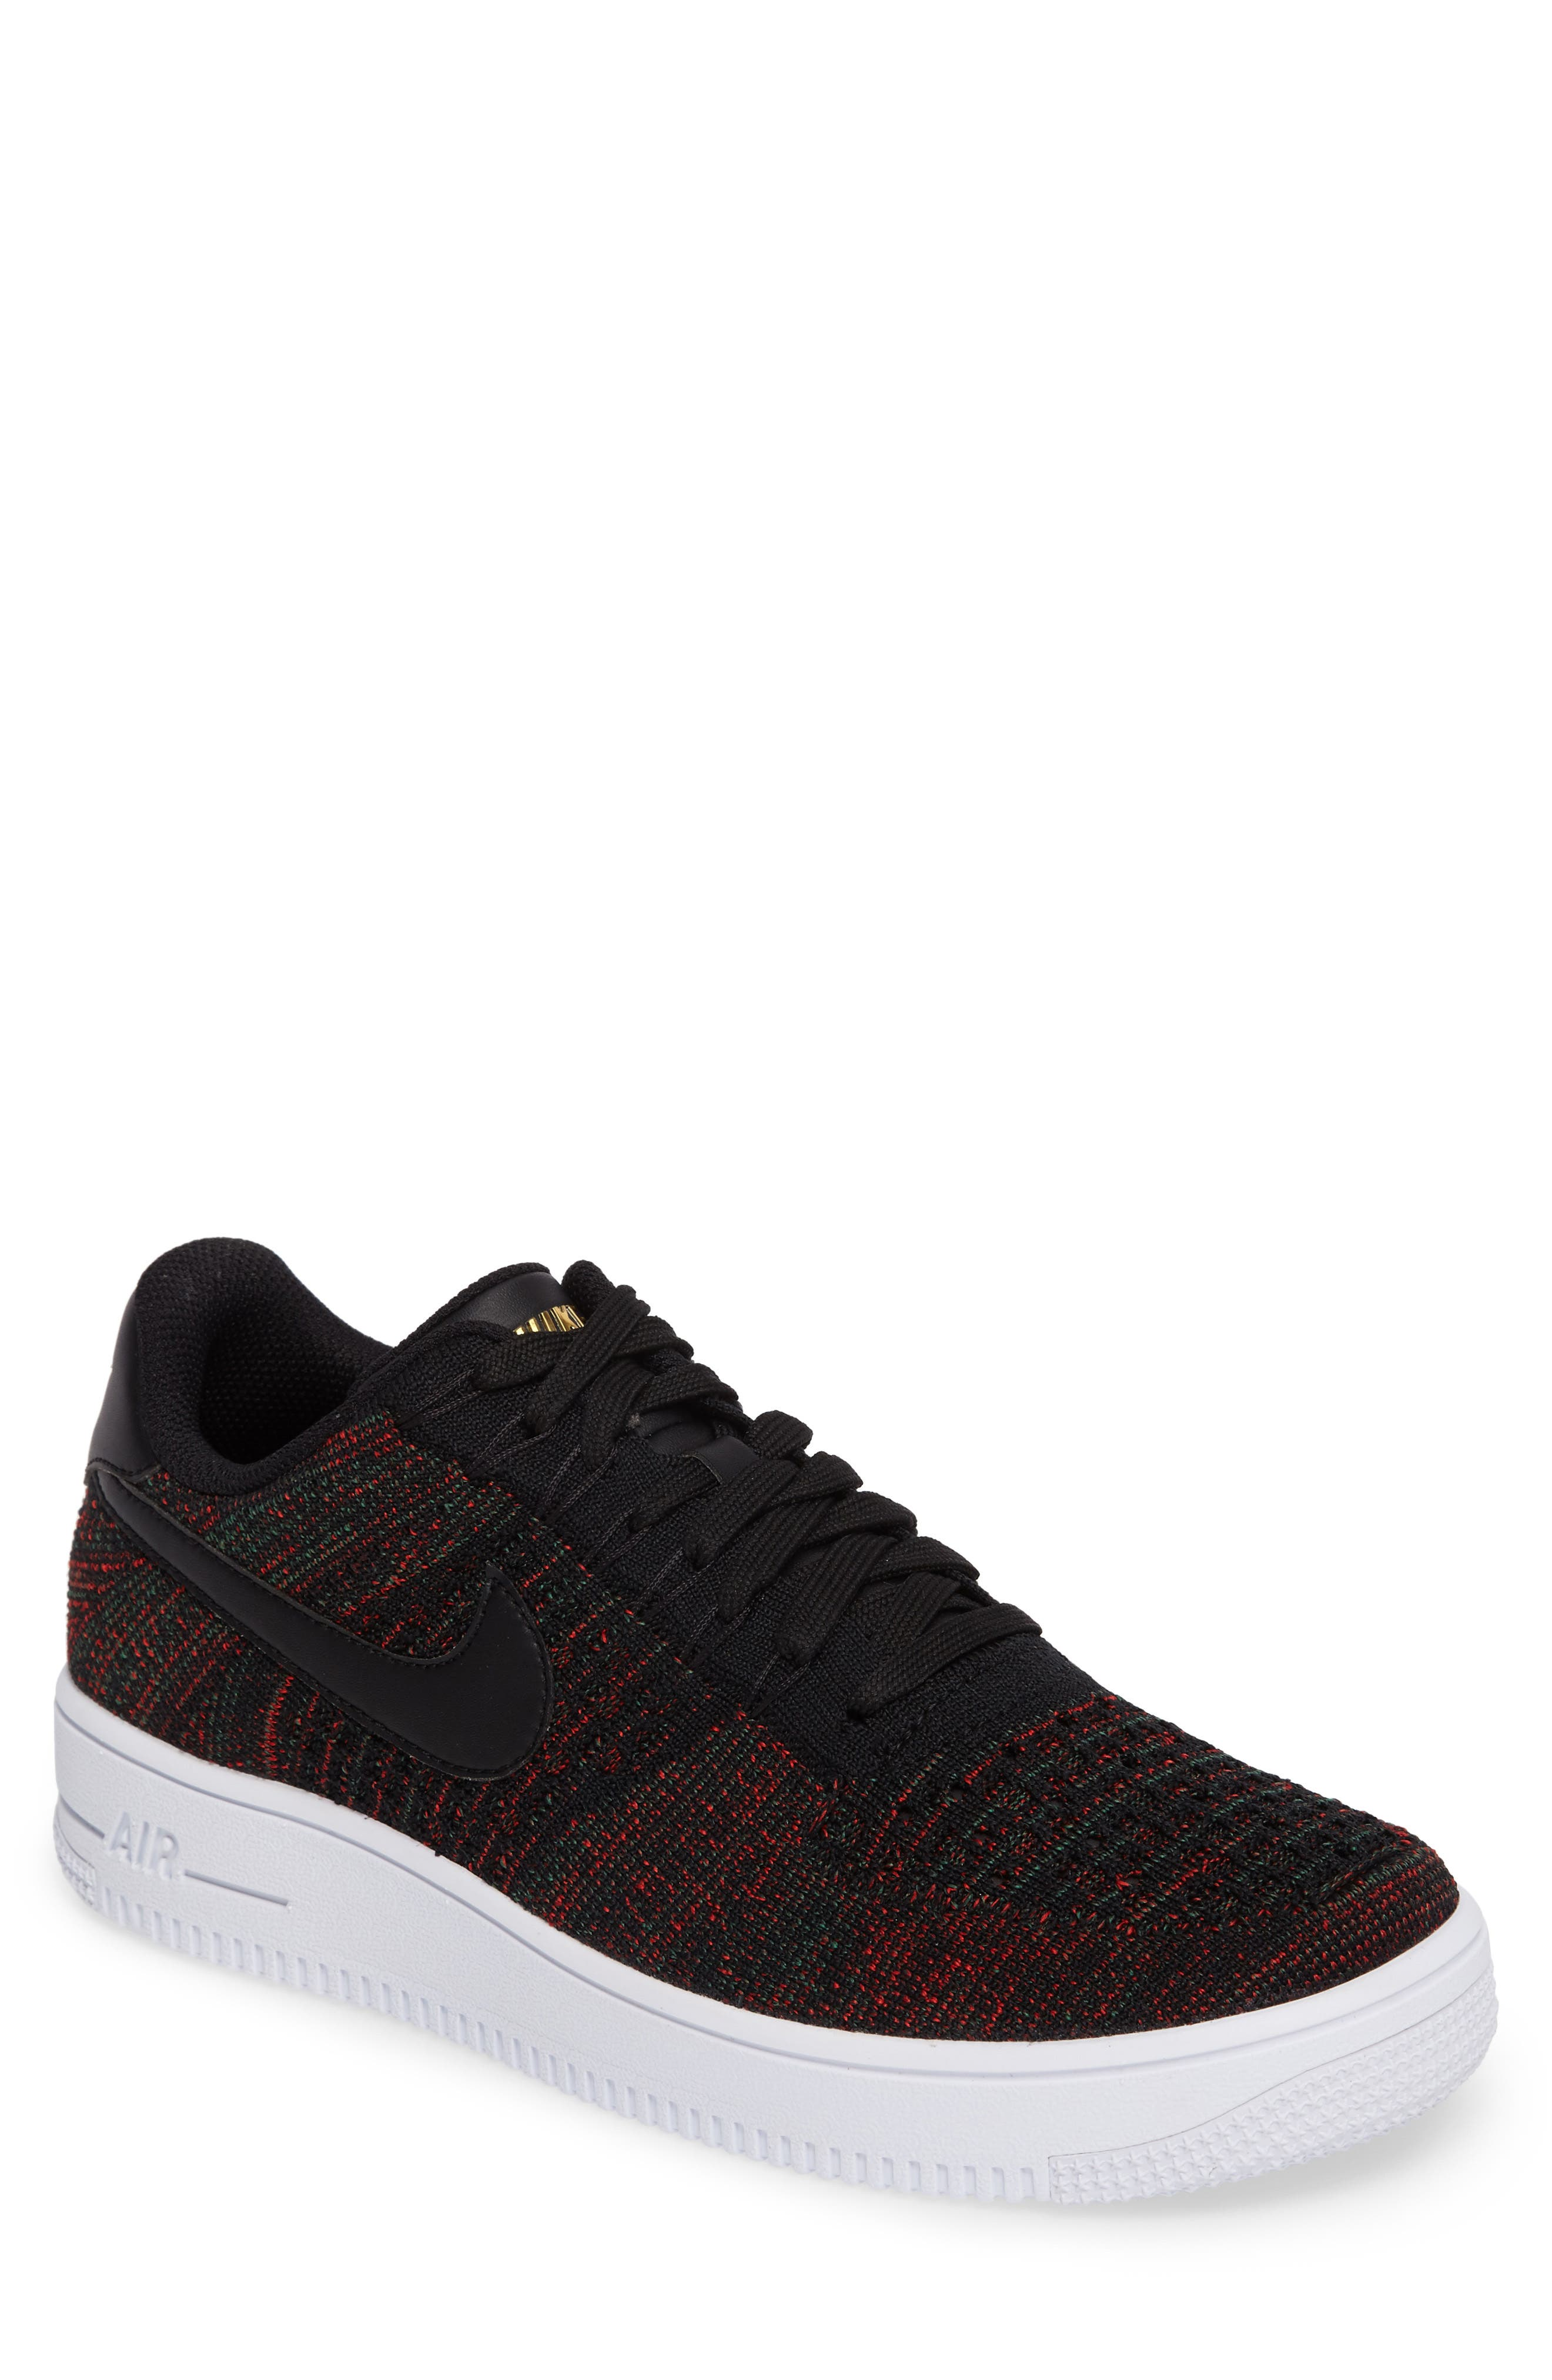 Air Force 1 Ultra Flyknit Low Sneaker,                         Main,                         color, 005